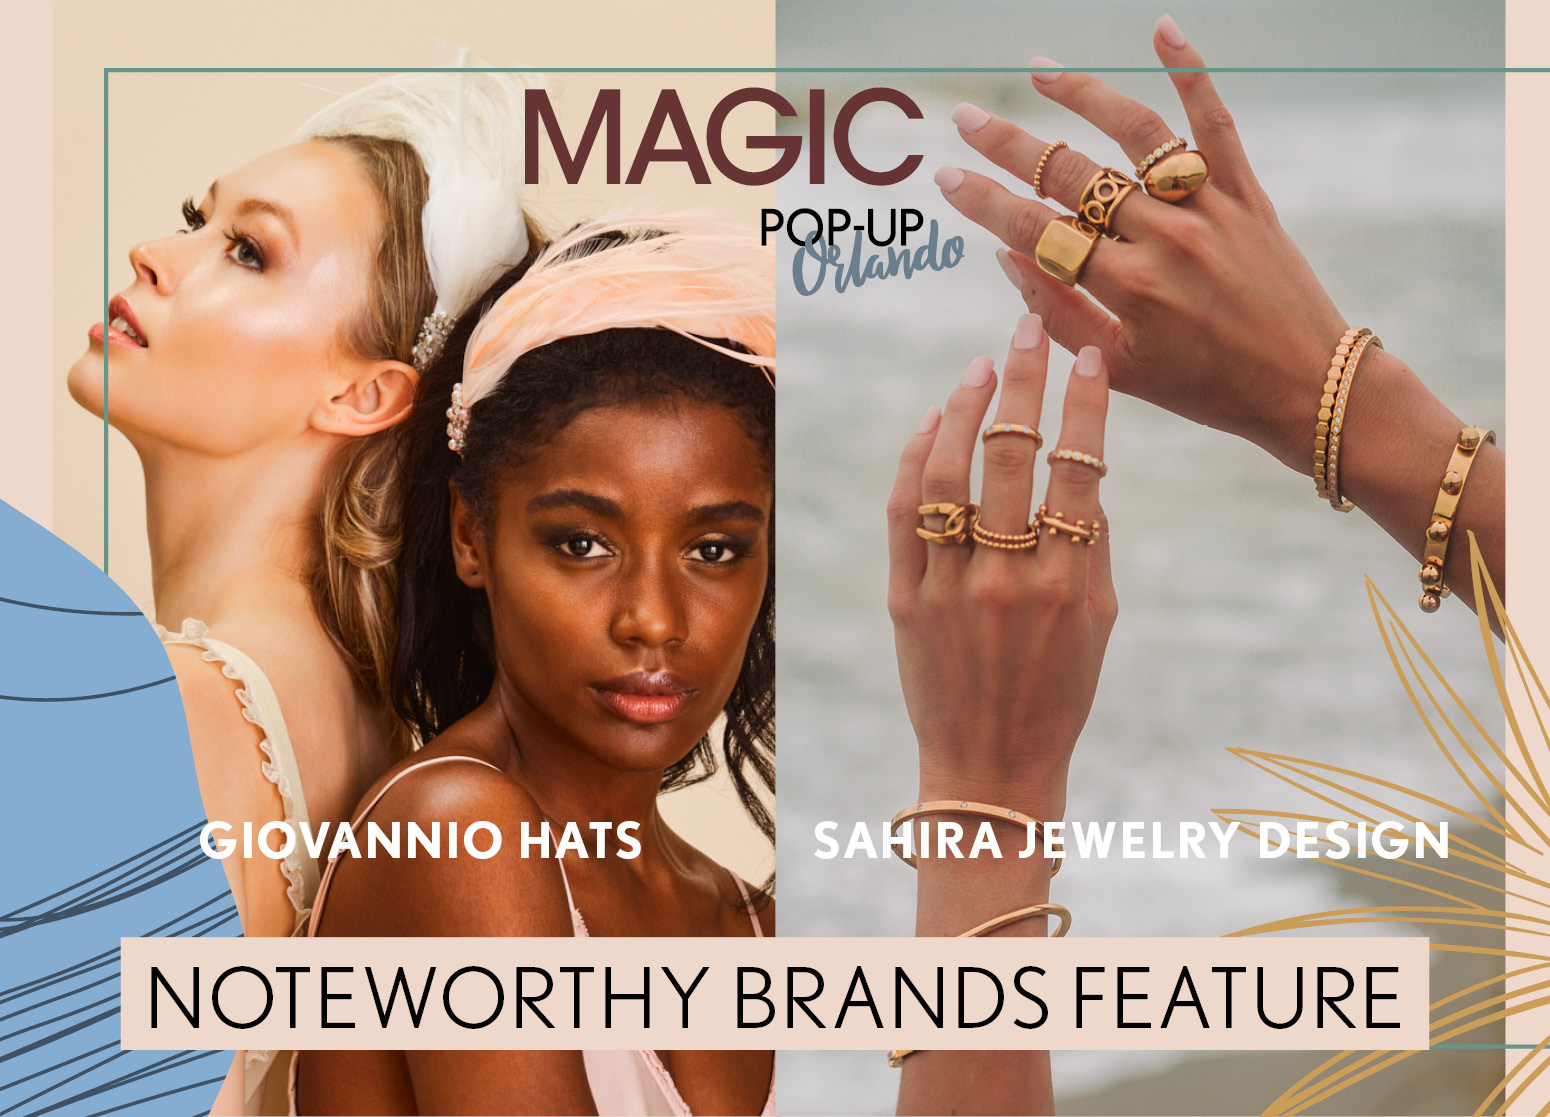 MAGIC Pop - Up Orlando Noteworthy Brands